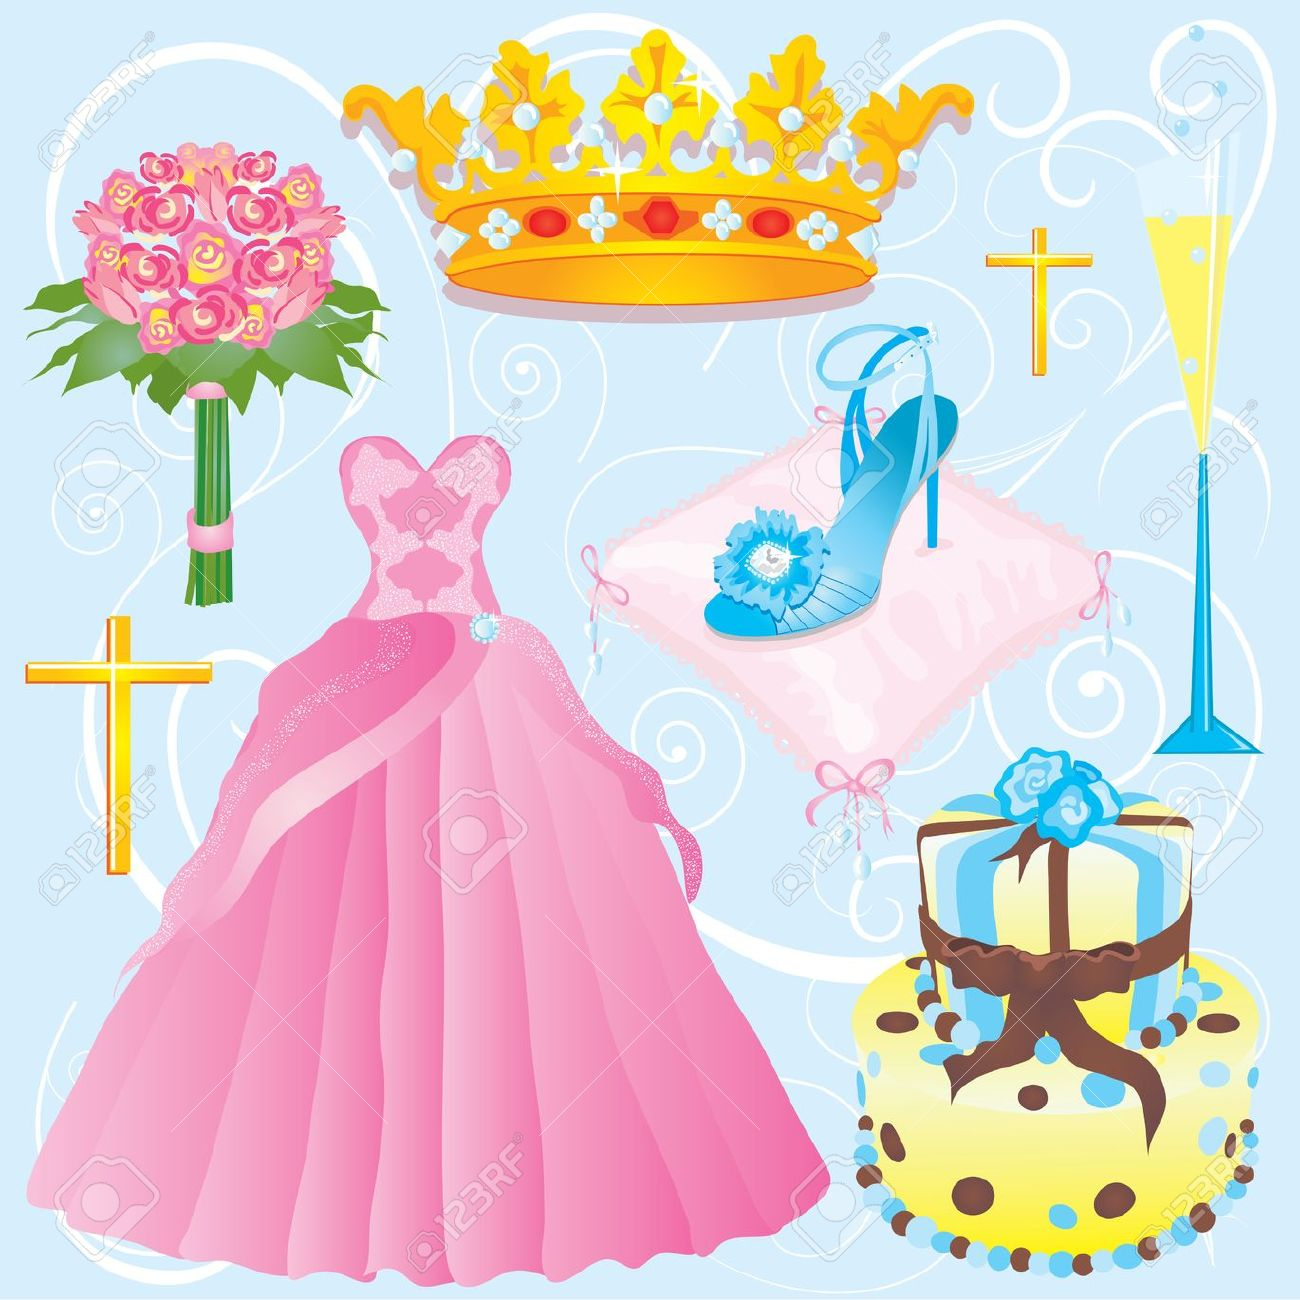 Quinceanera clip art or invitation for your party Stock Vector - 5955074